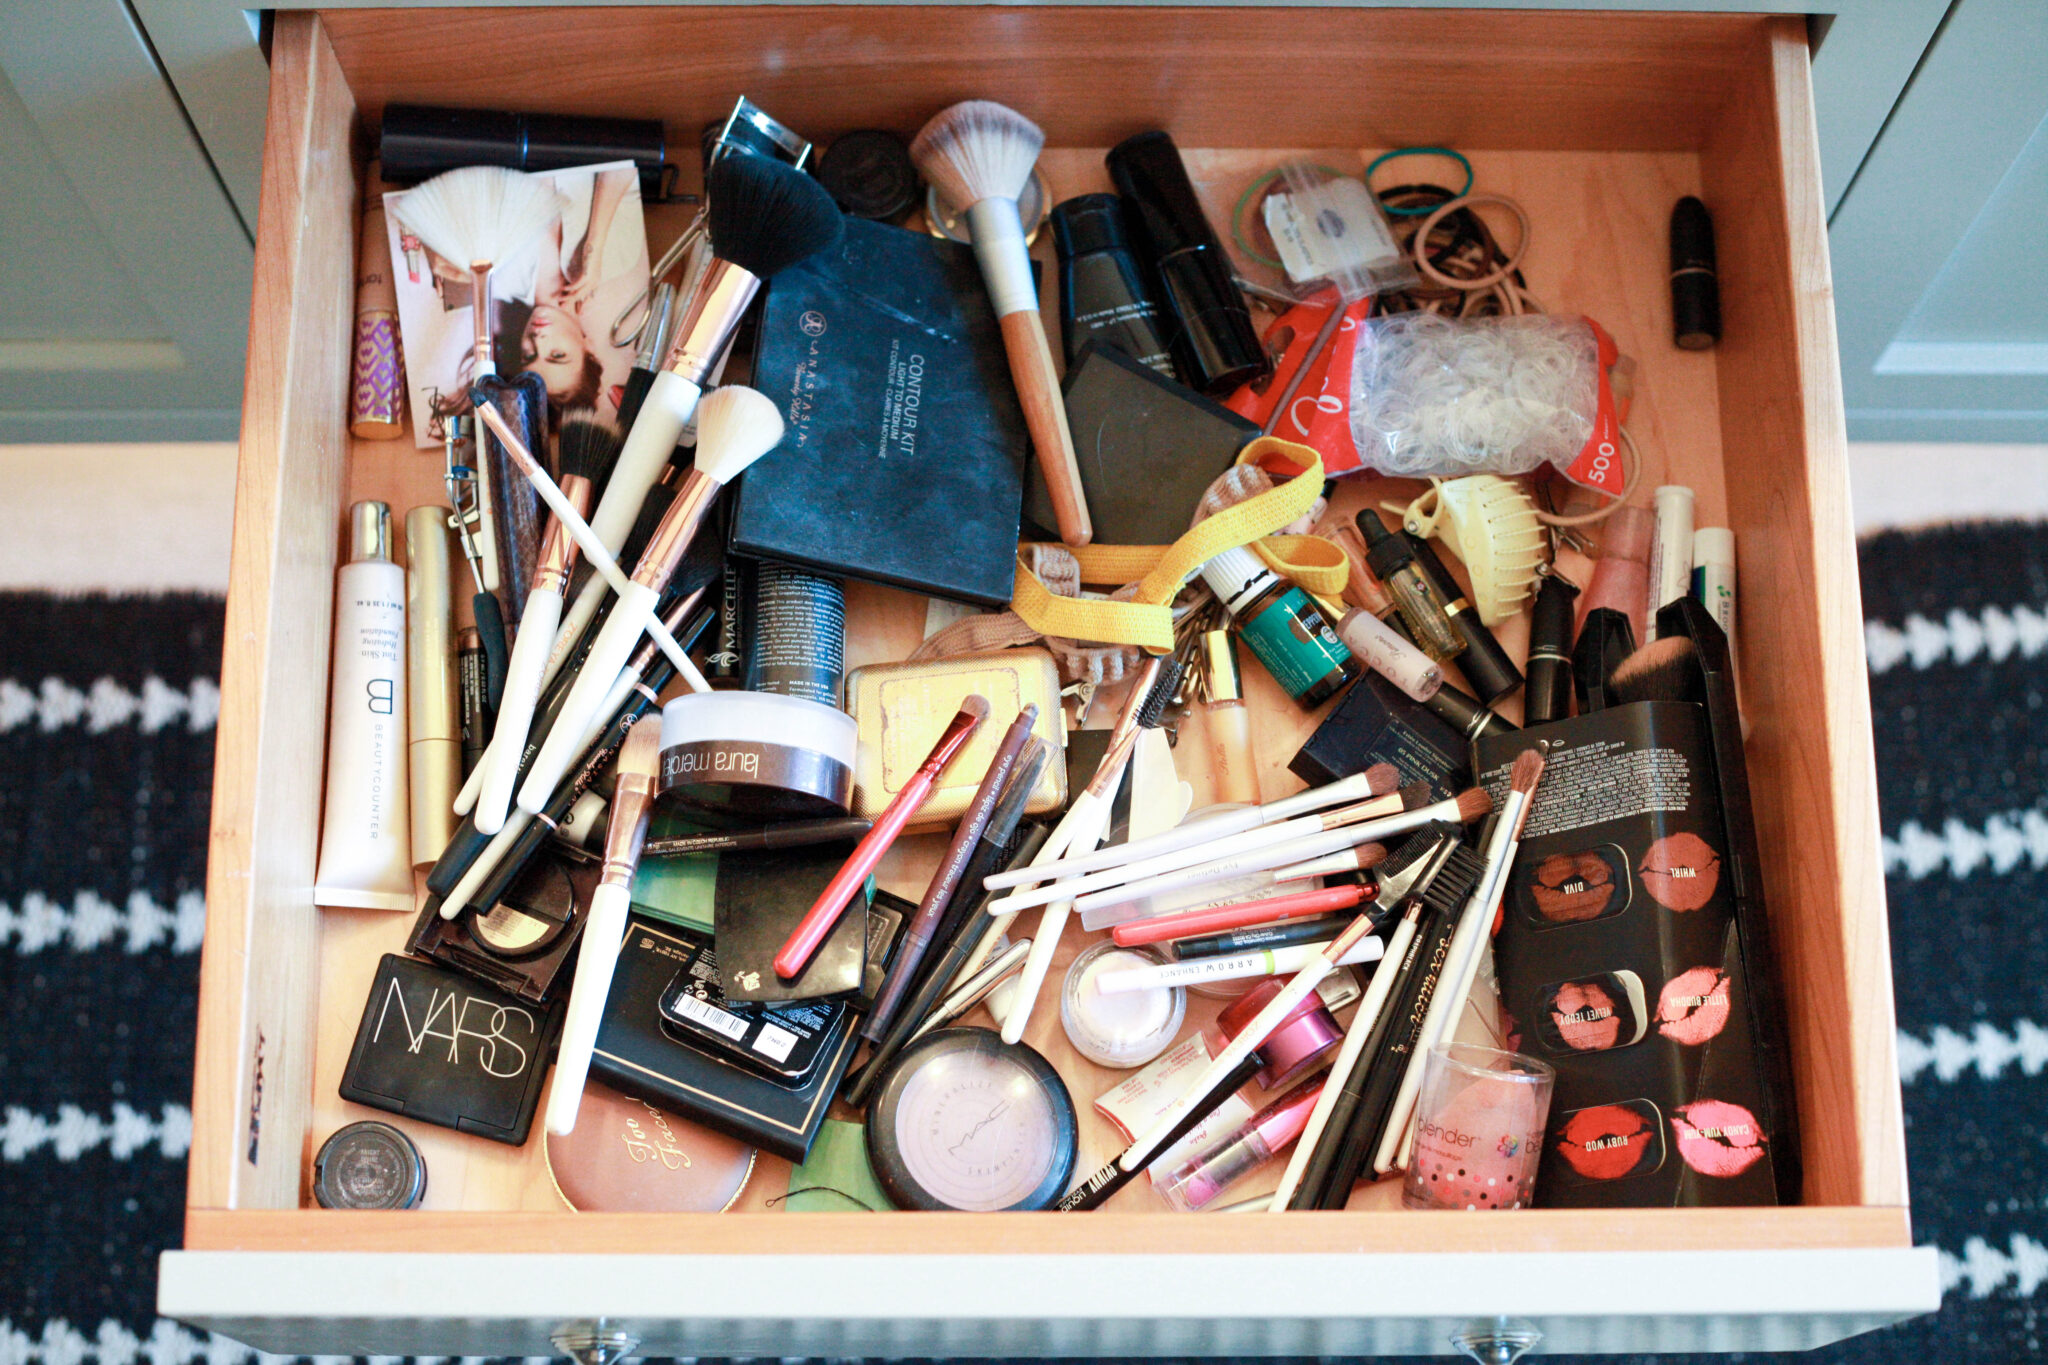 How to Organize Your Makeup Drawer - step 1, the mess!